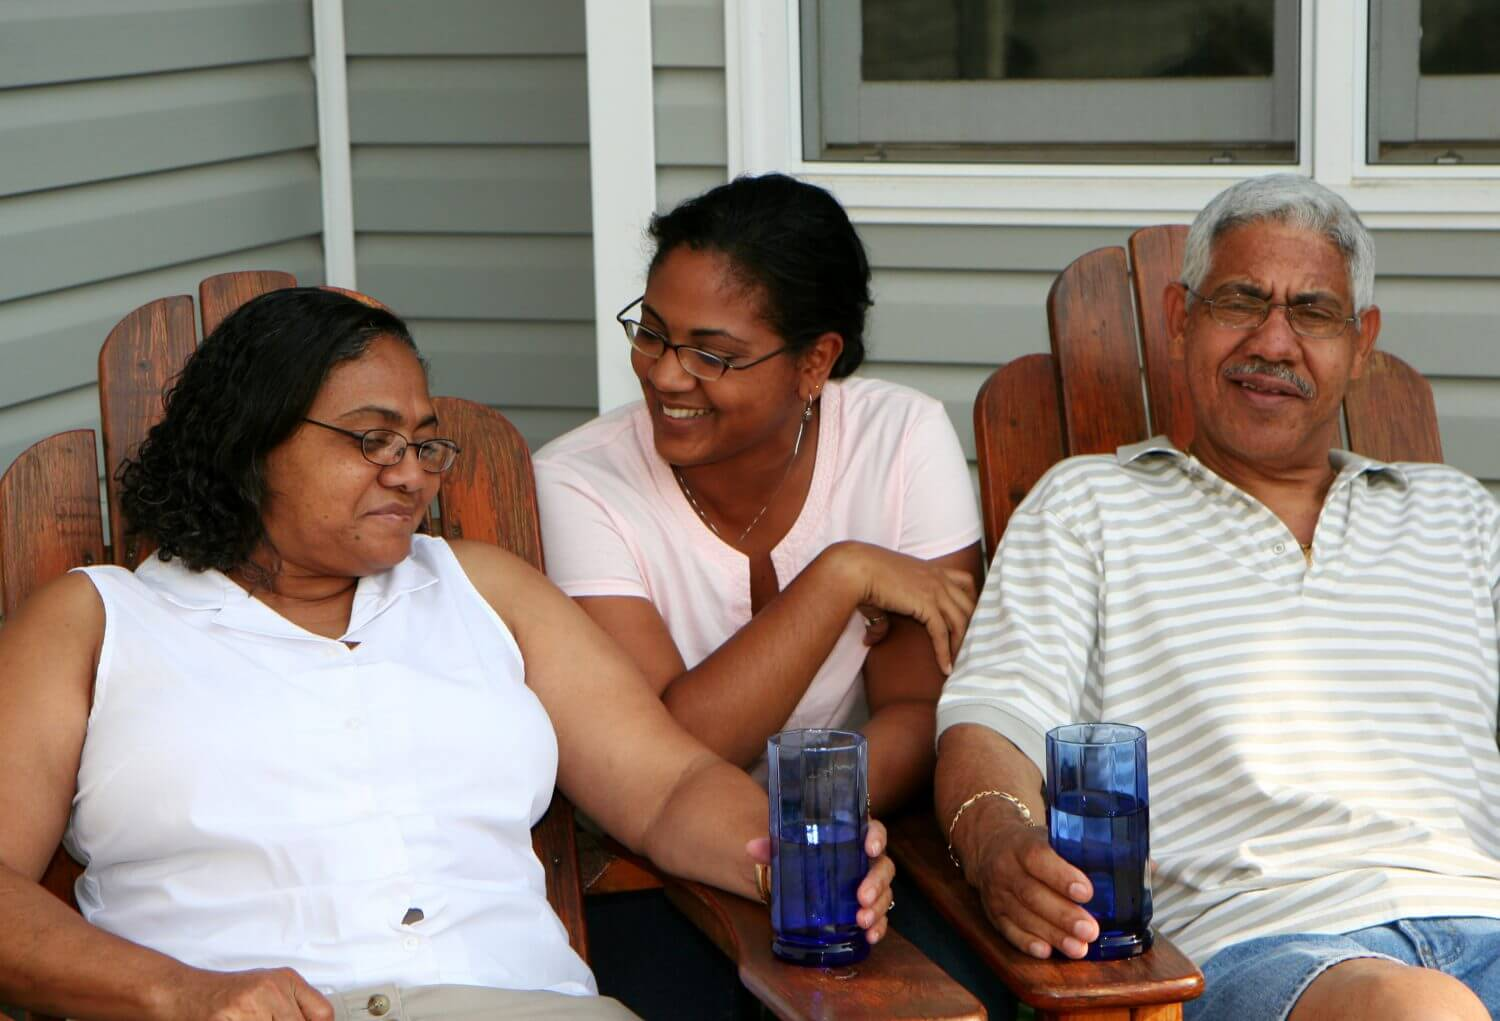 How Do I Talk To My Parents About Age-Related Care?